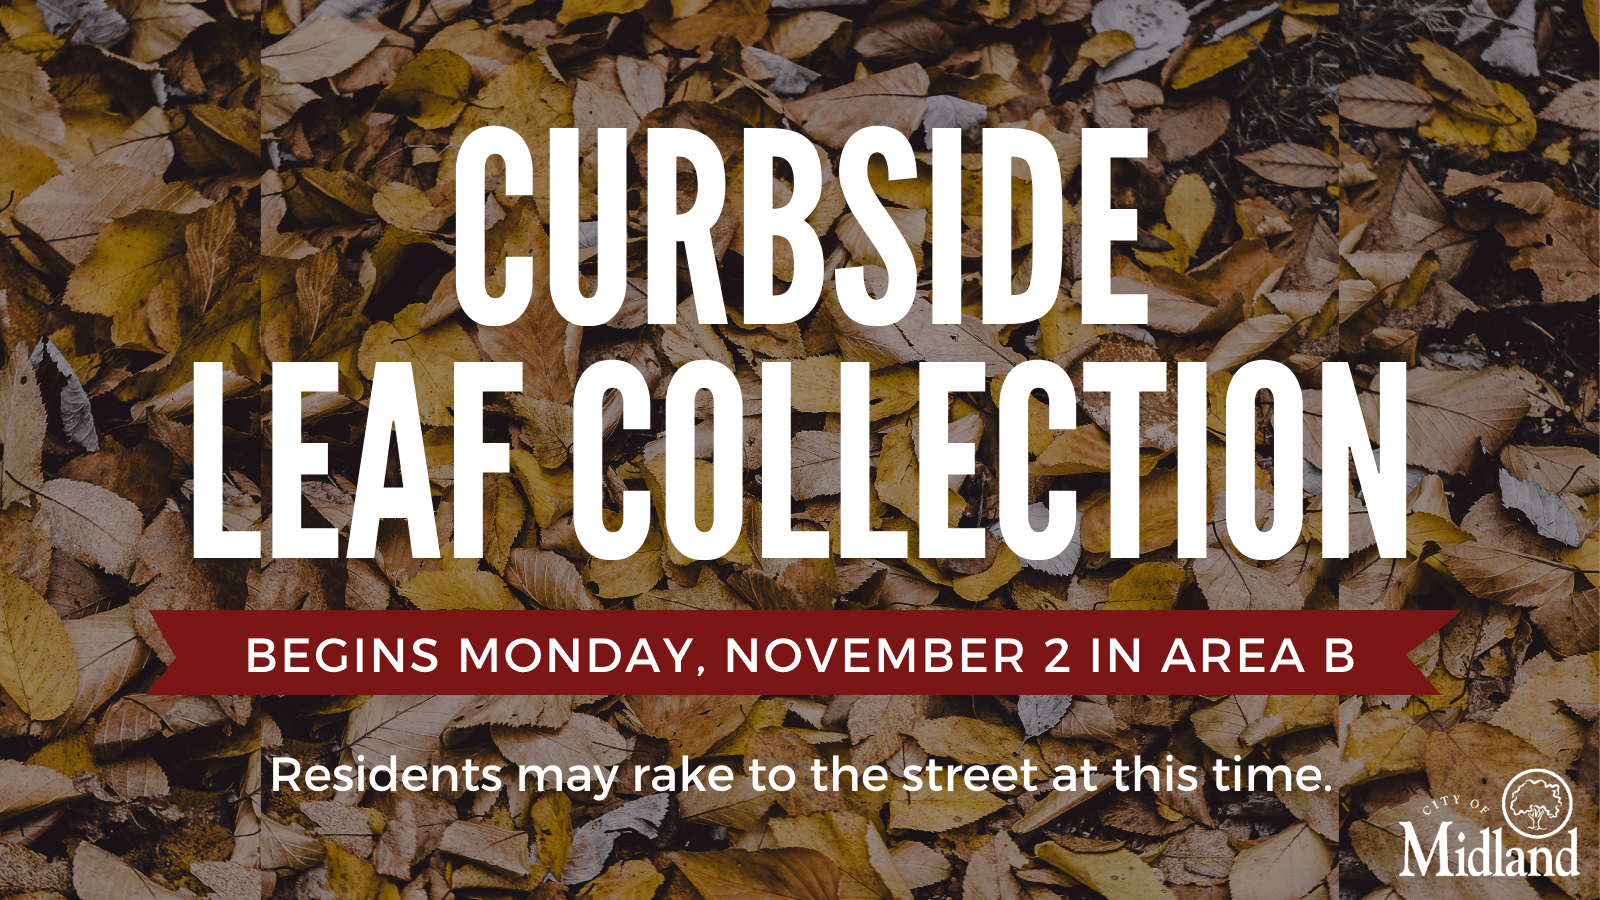 2020 curbside leaf collection begins on Monday, November 2 in Area B